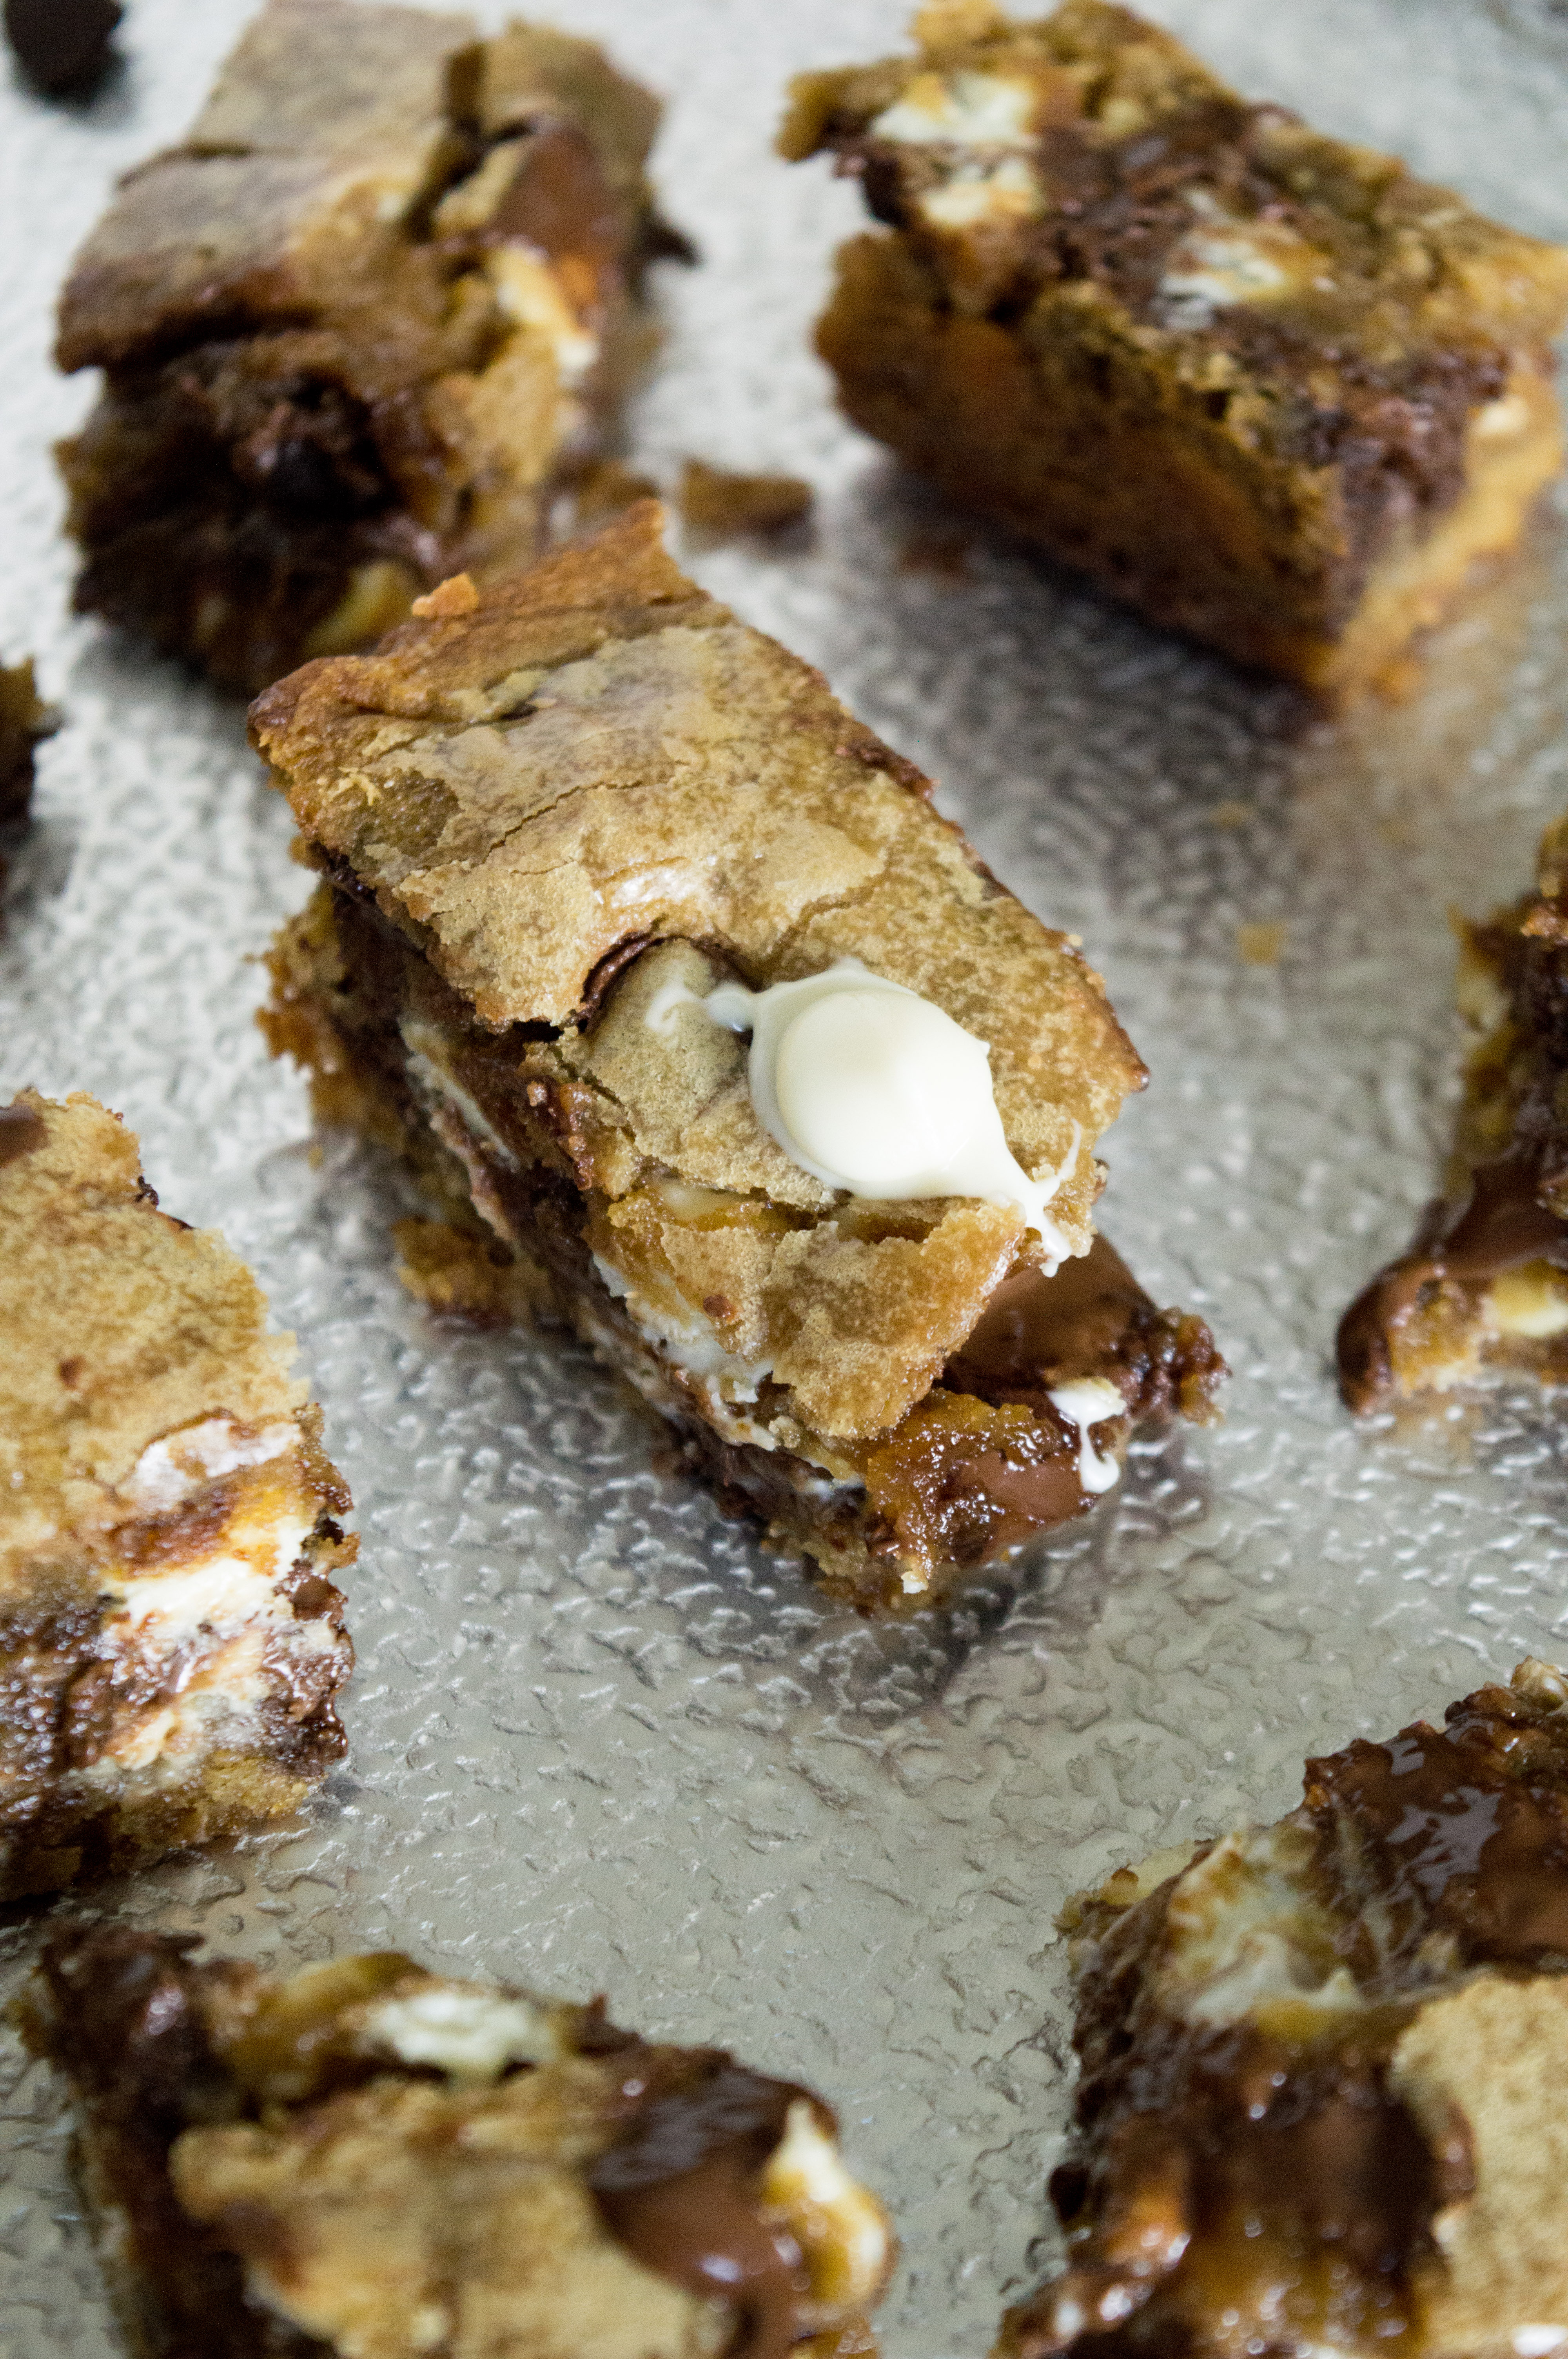 Looking for a Nutella cookie recipe? Look no farther. These Nutella Chocolate Chip Sugar Cookie Bars are so good and take cookie bars to a new level.